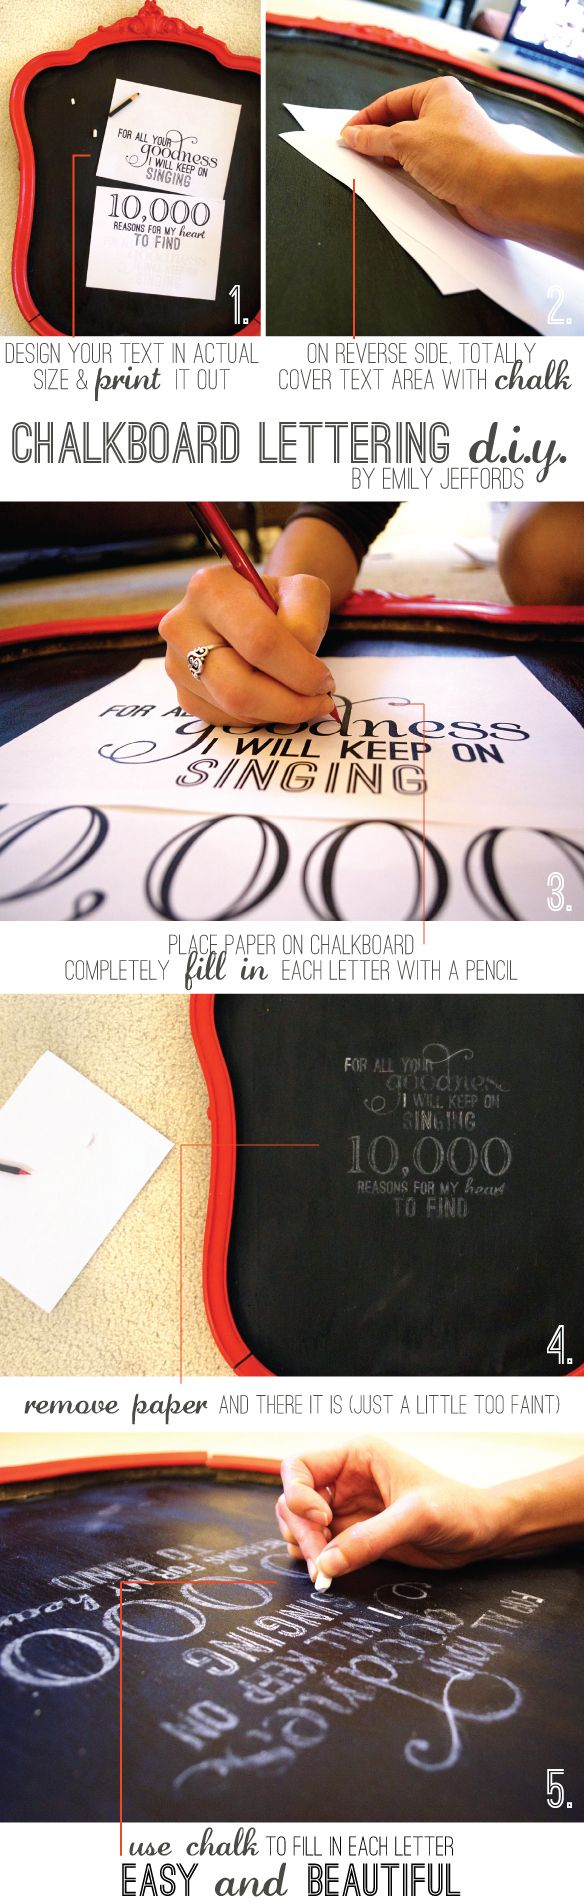 1000+ ideas about Chalkboard Writing Tips on Pinterest | Chalkboards ...